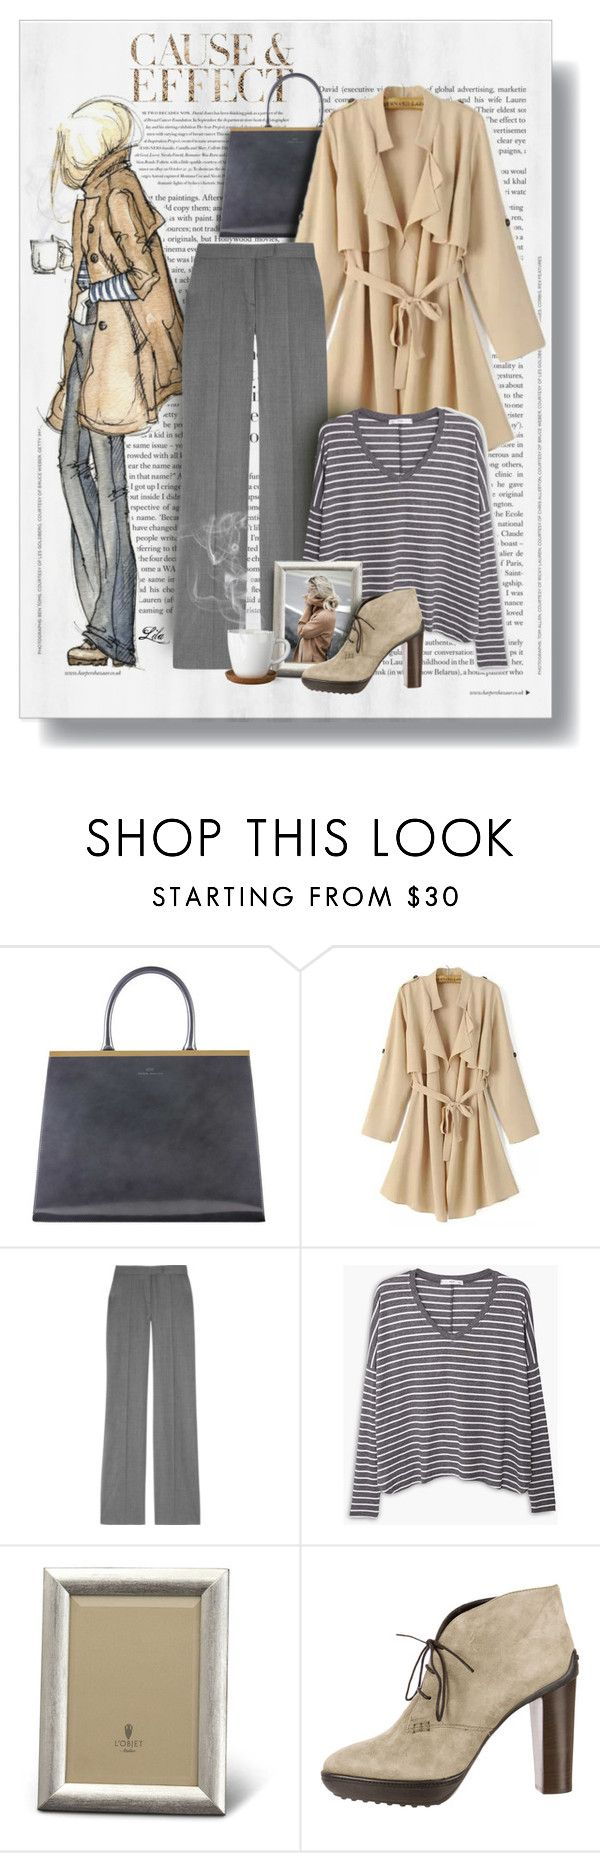 """""""Get the look - Rainy Day Style"""" by fashion-architect-style ❤ liked on Polyvore featuring Envi, STELLA McCARTNEY, MANGO, L'Objet, Tod's, Höganäs Ceramic, women's clothing, women's fashion, women and female"""